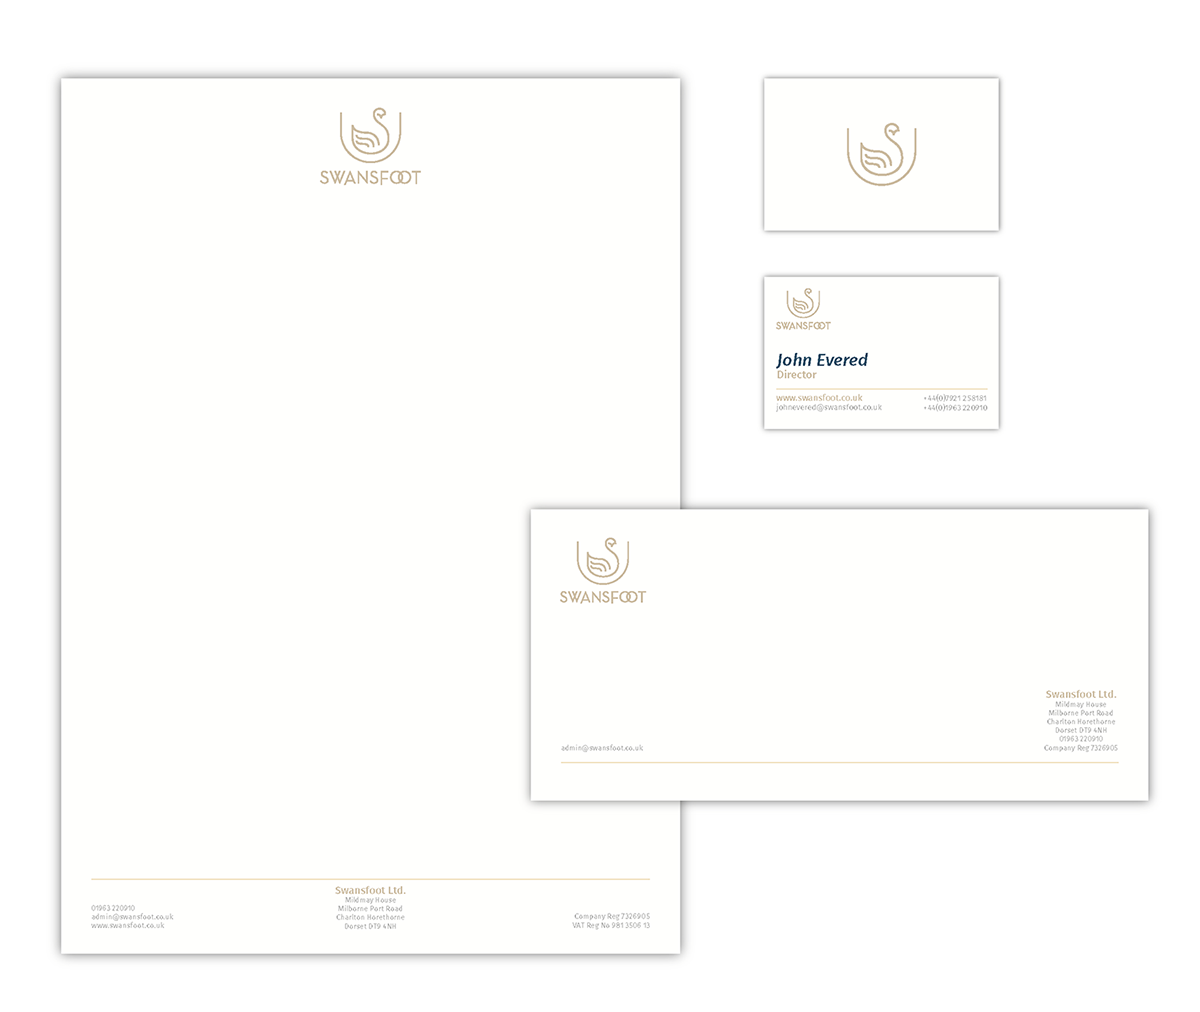 Swansfoot Letterhead Business Card Compliments Slip Design by Digiwool